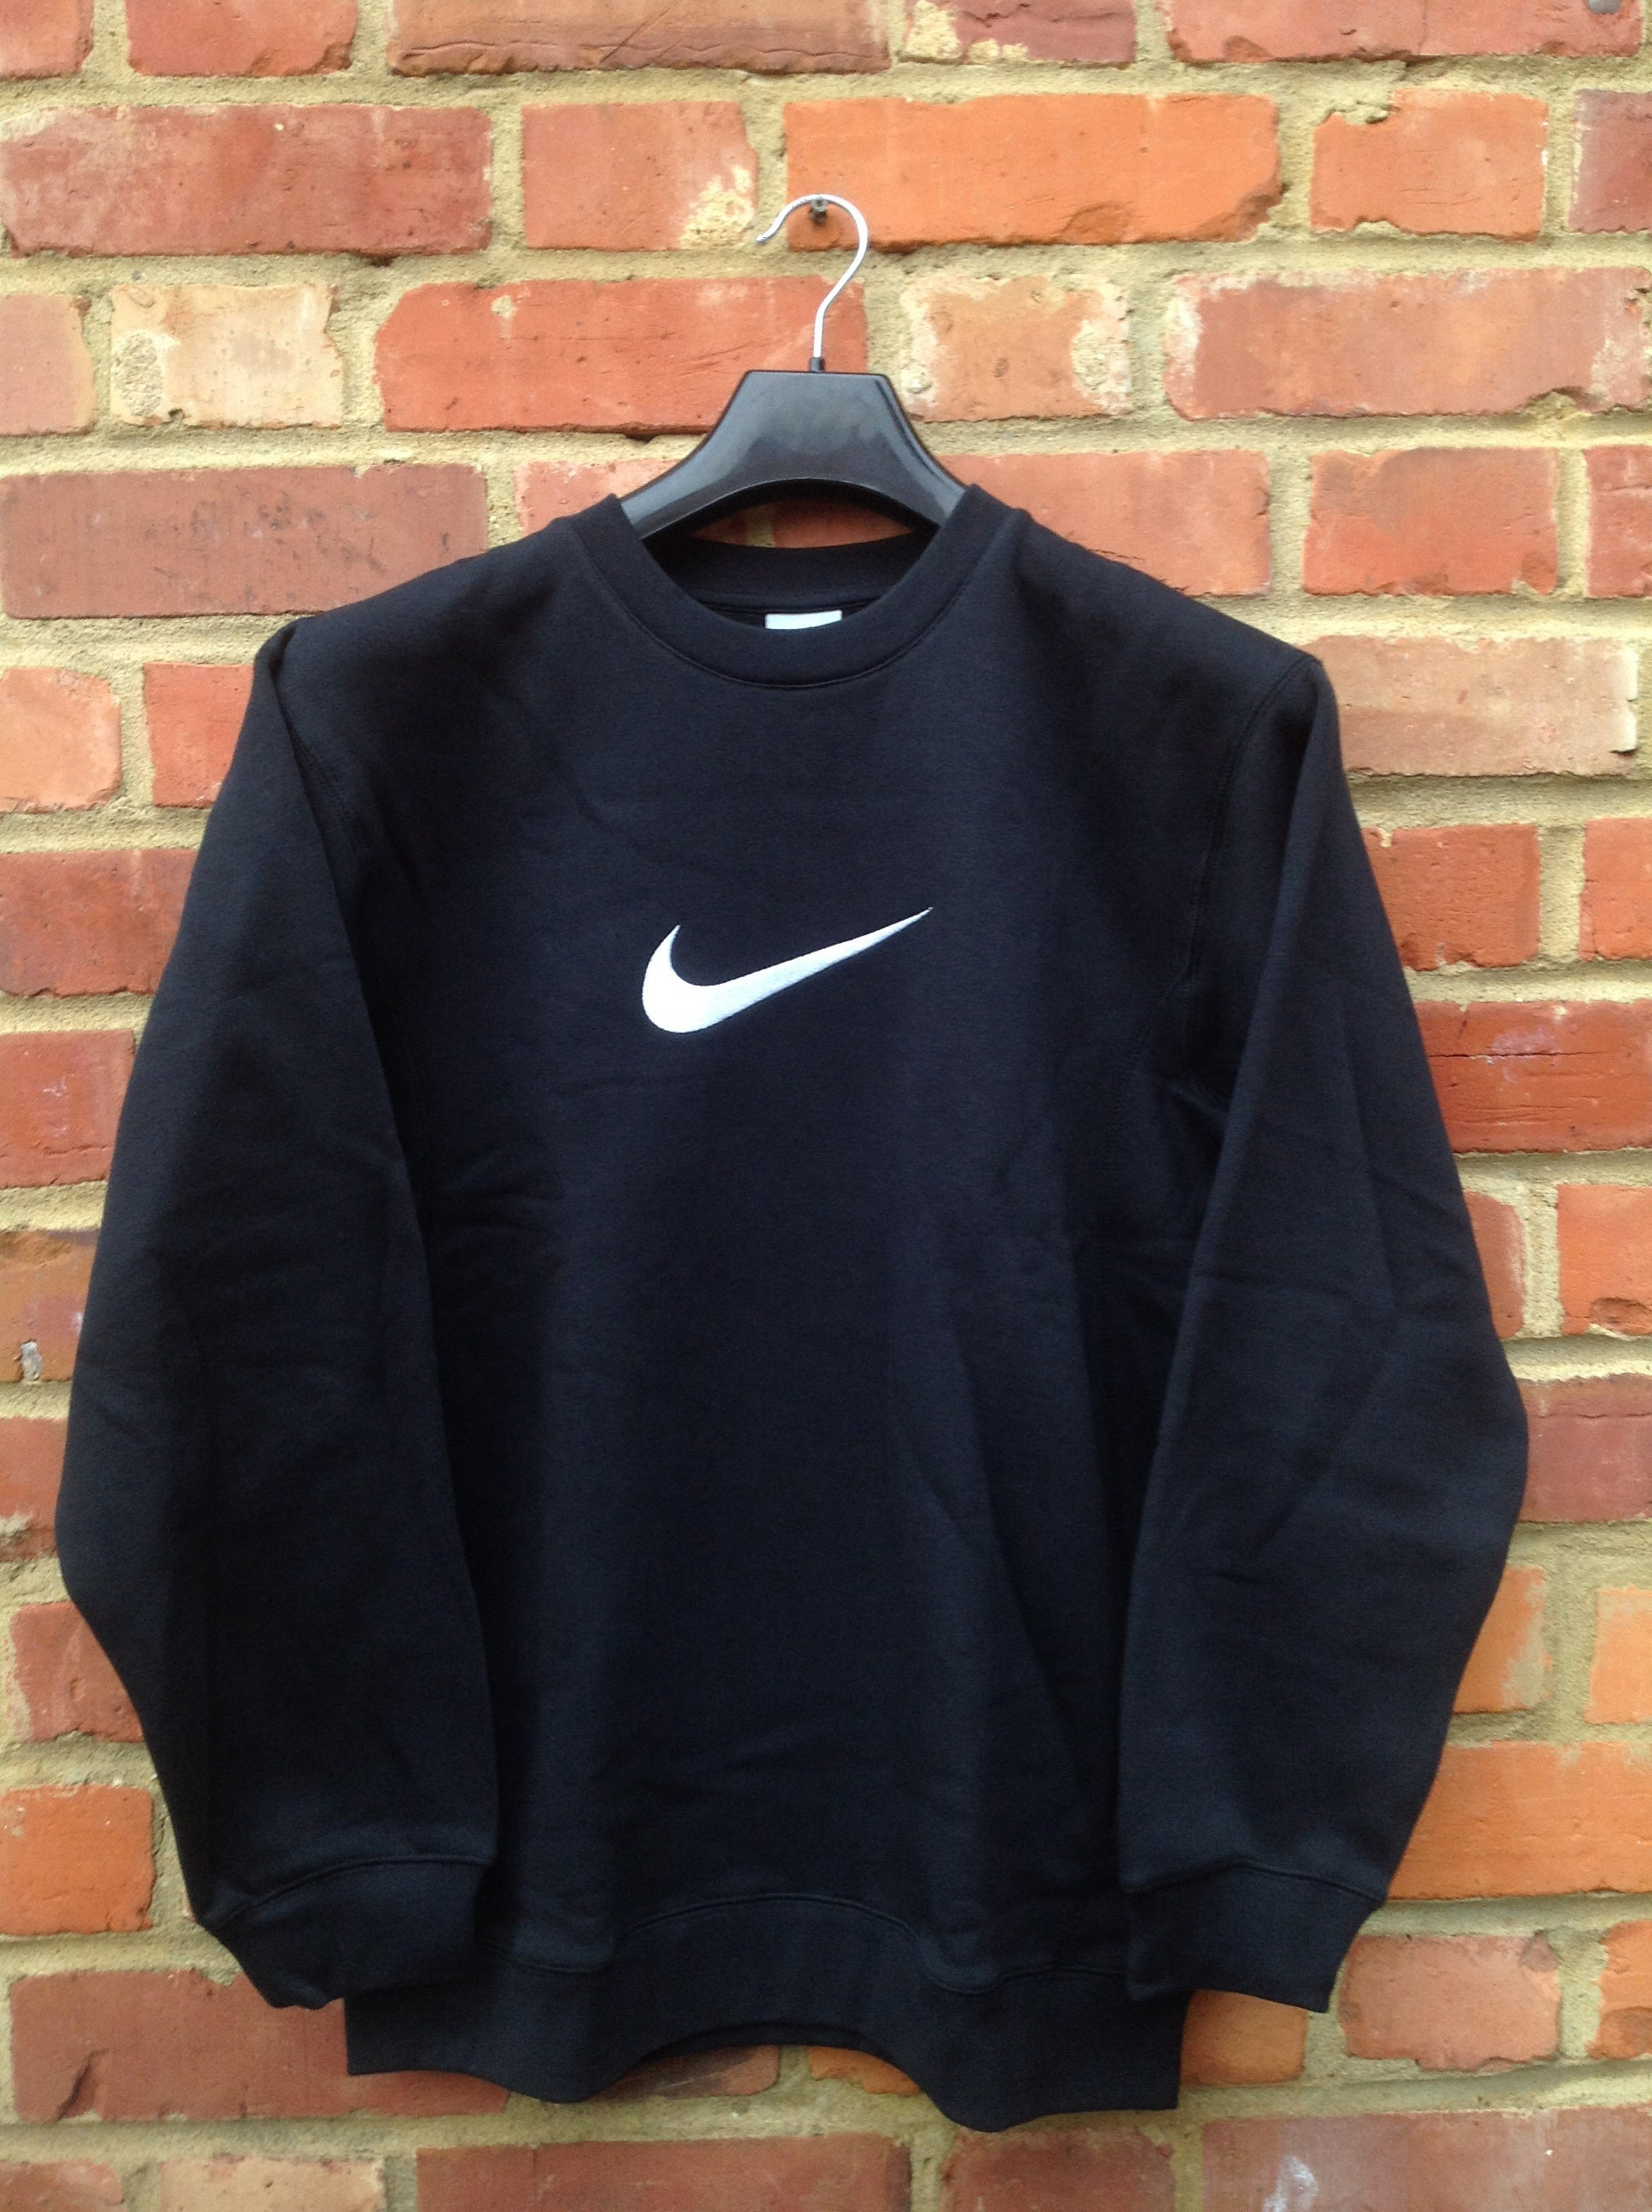 RARE NEW BLACK VINTAGE NIKE SWEATSHIRT SIZE SMALL SIZE 8/10/12 PM